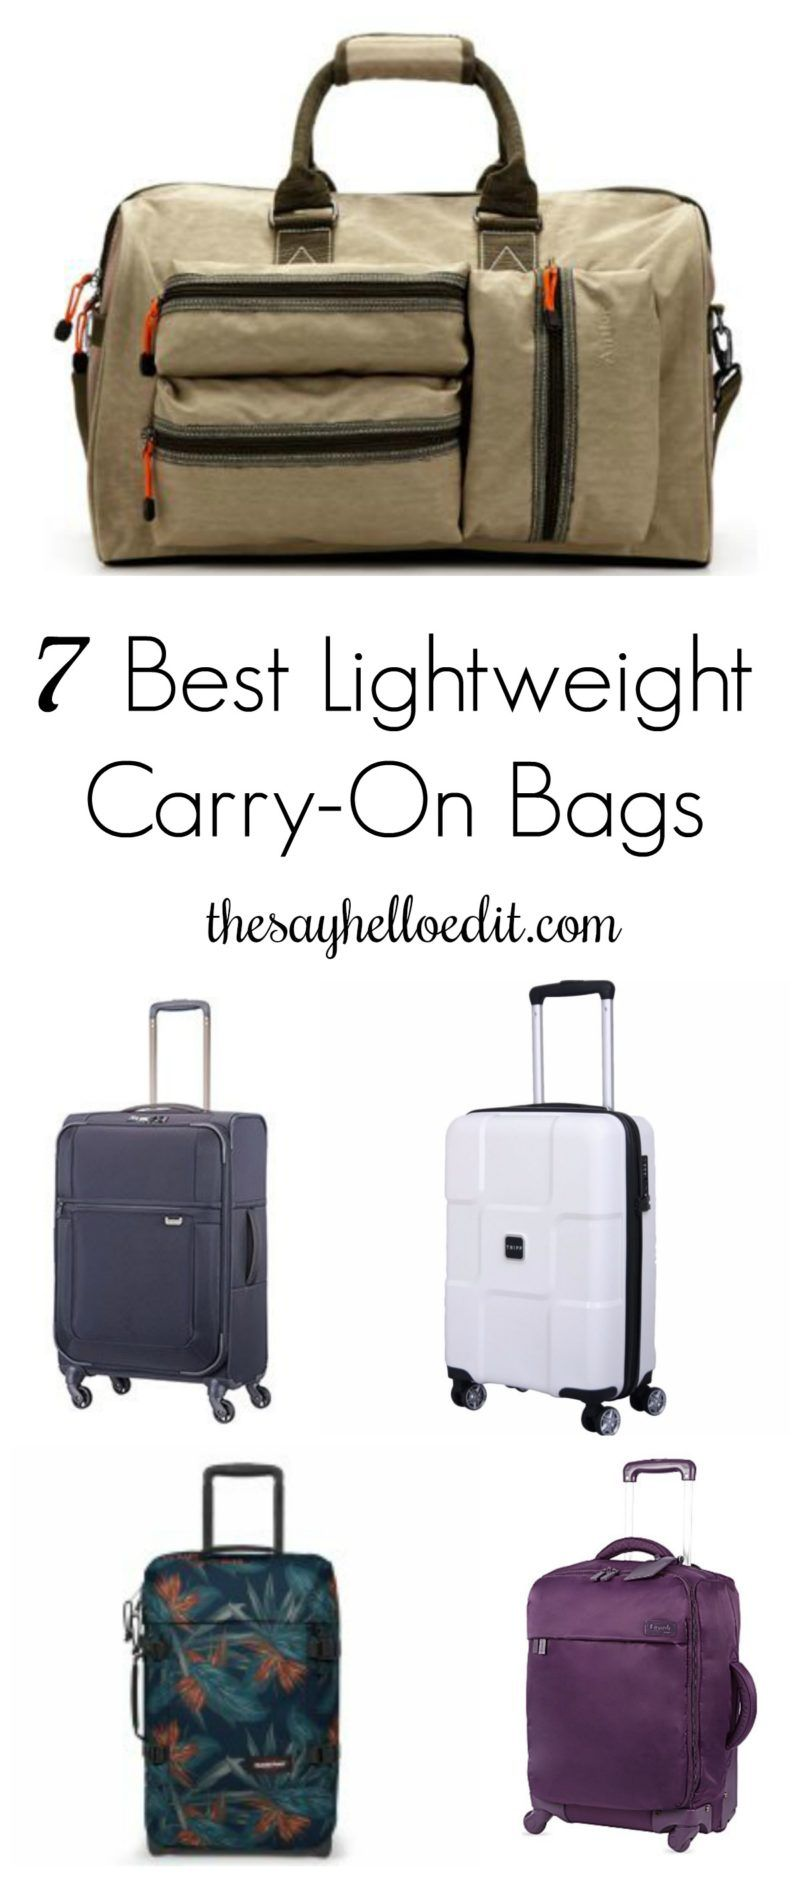 Lightweight Cabin Luggage 7 Best Lightweight Cabin Luggage Bags Travel Gear Travel Tips